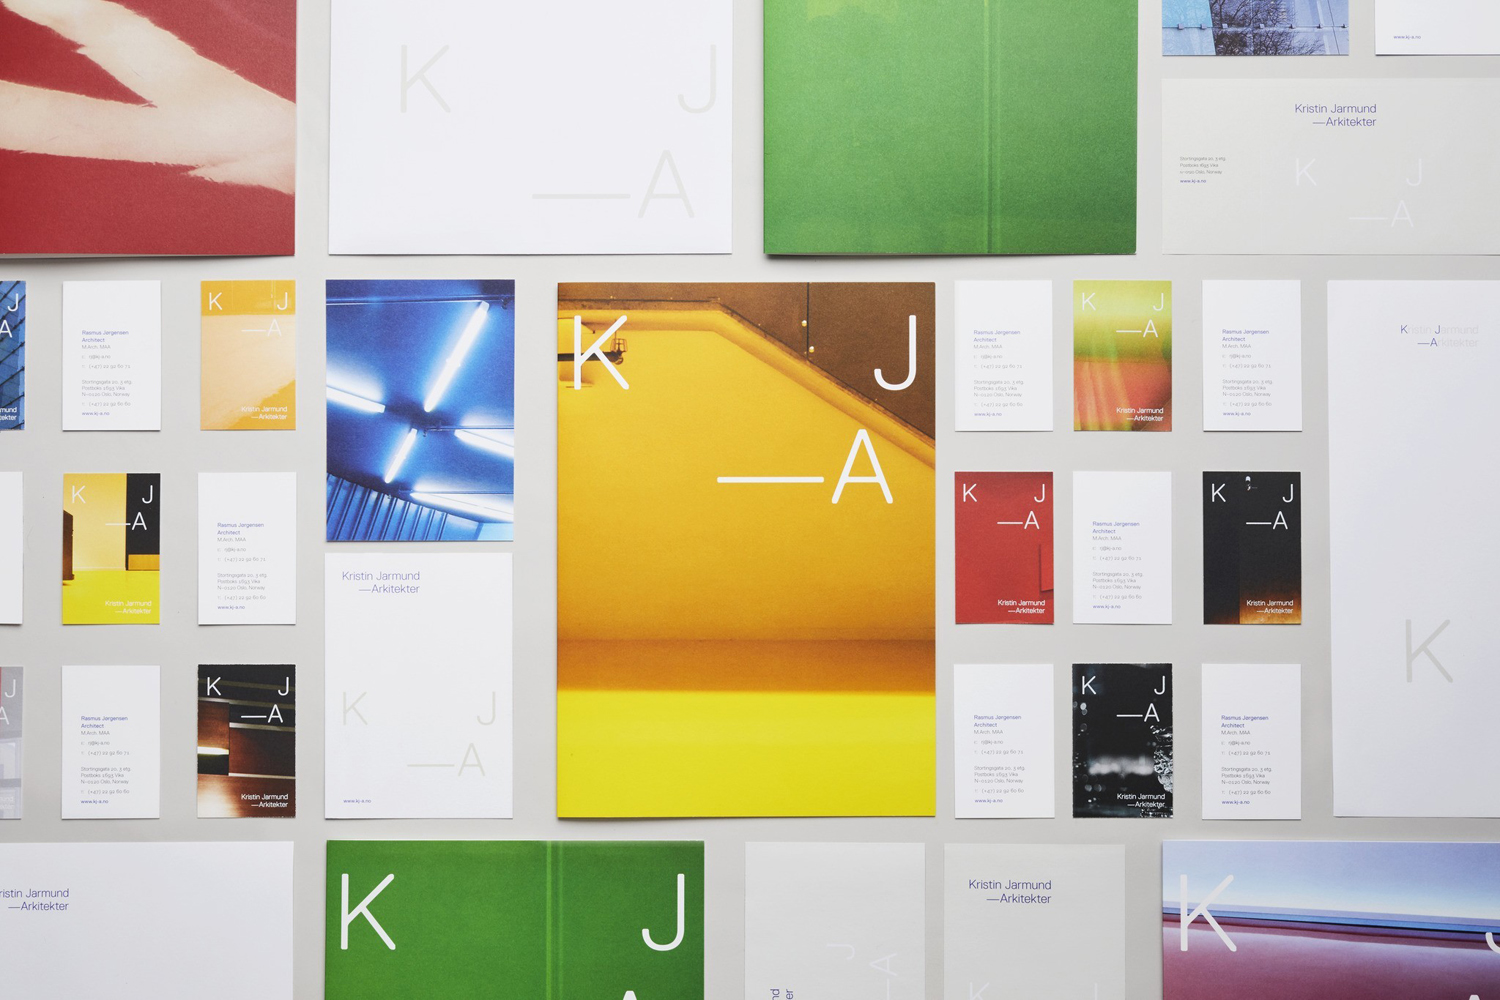 Logo, stationery and business cards designed by Snøhetta for Oslo-based Kristin Jarmund Architects